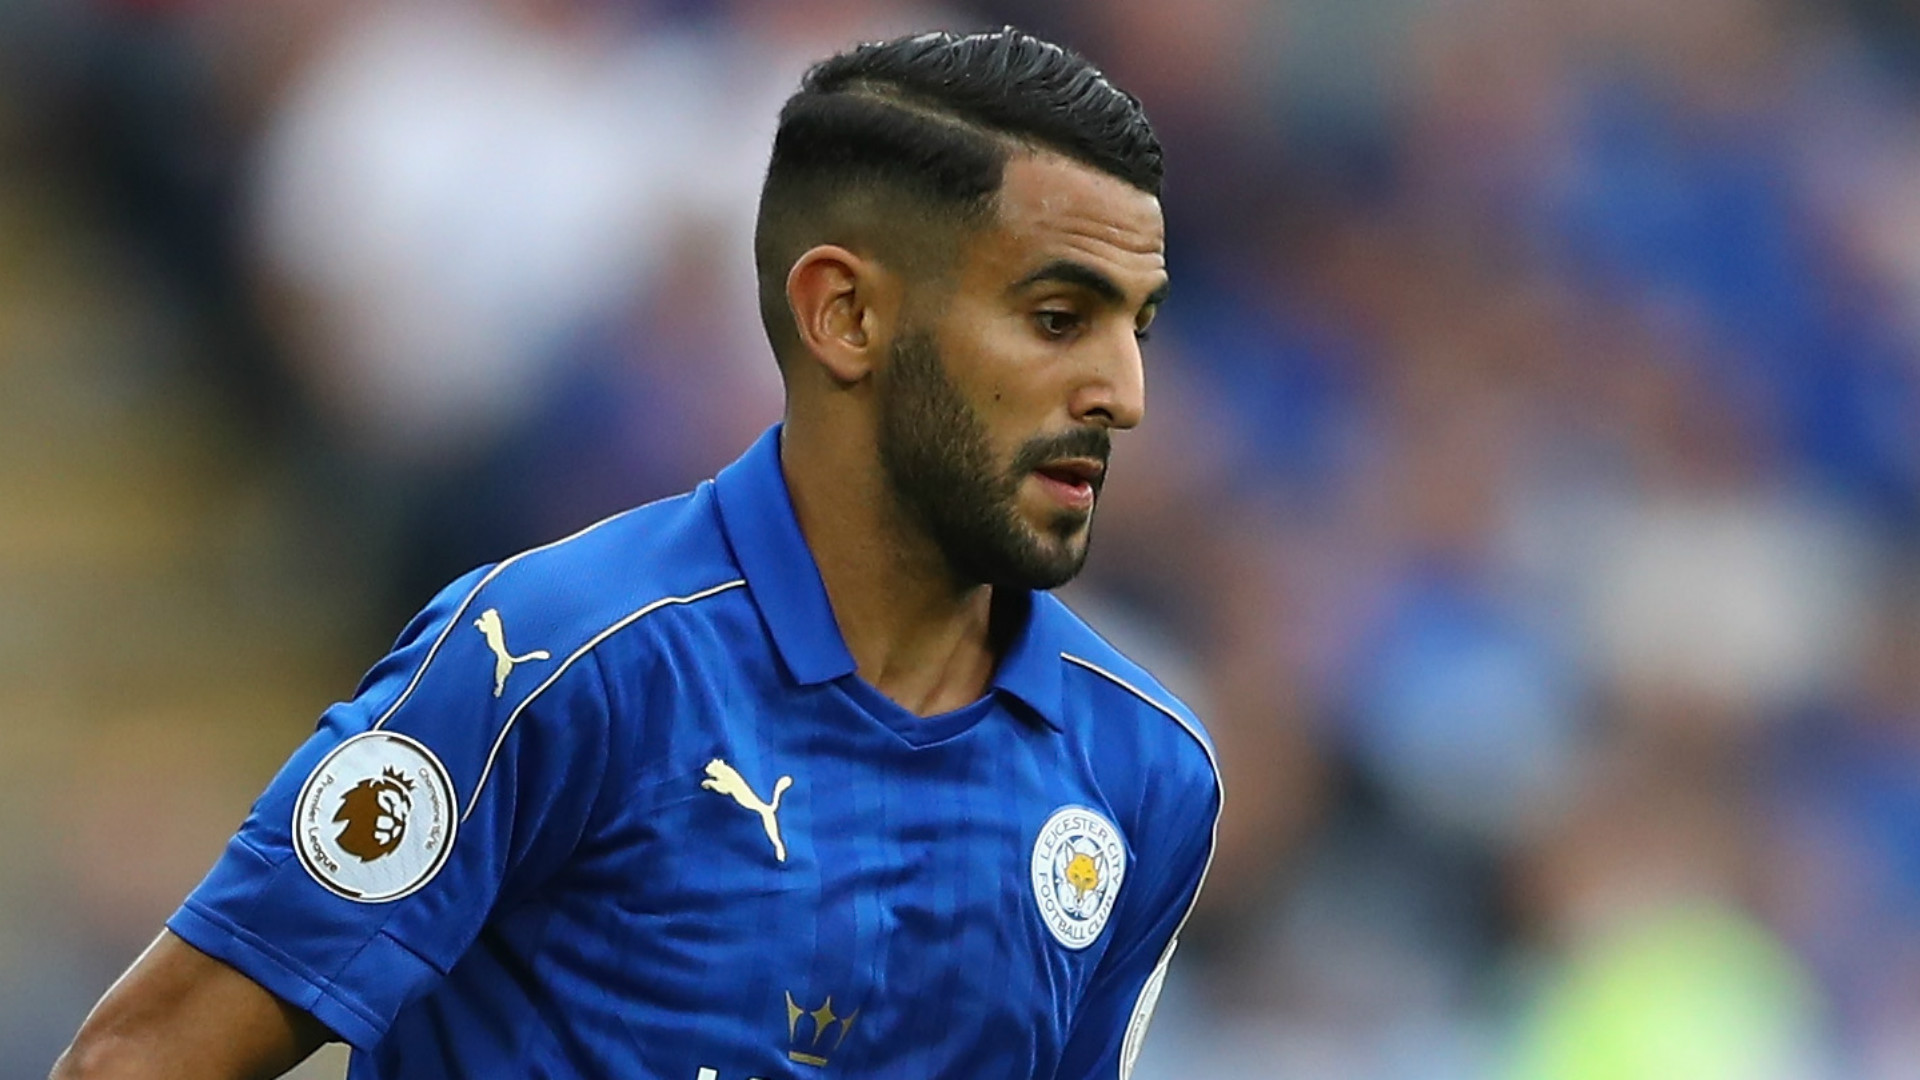 Roma Pick Up Pace Of Negotiations For Arsenal Wing Target Riyad Mahrez